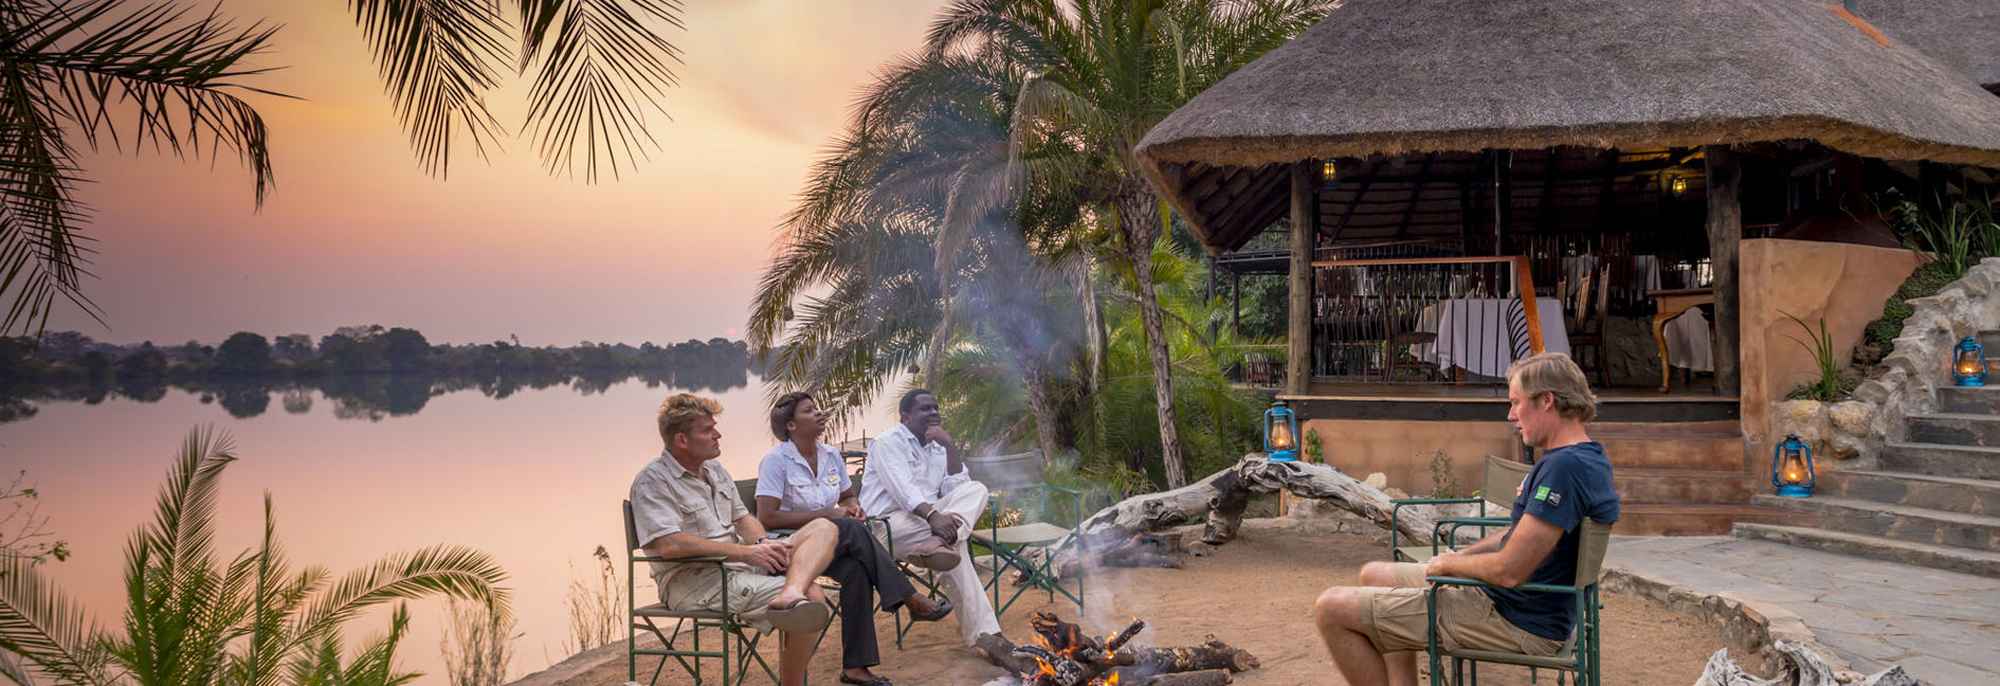 People relaxing by a pit fire by the Kafue River in Zambia